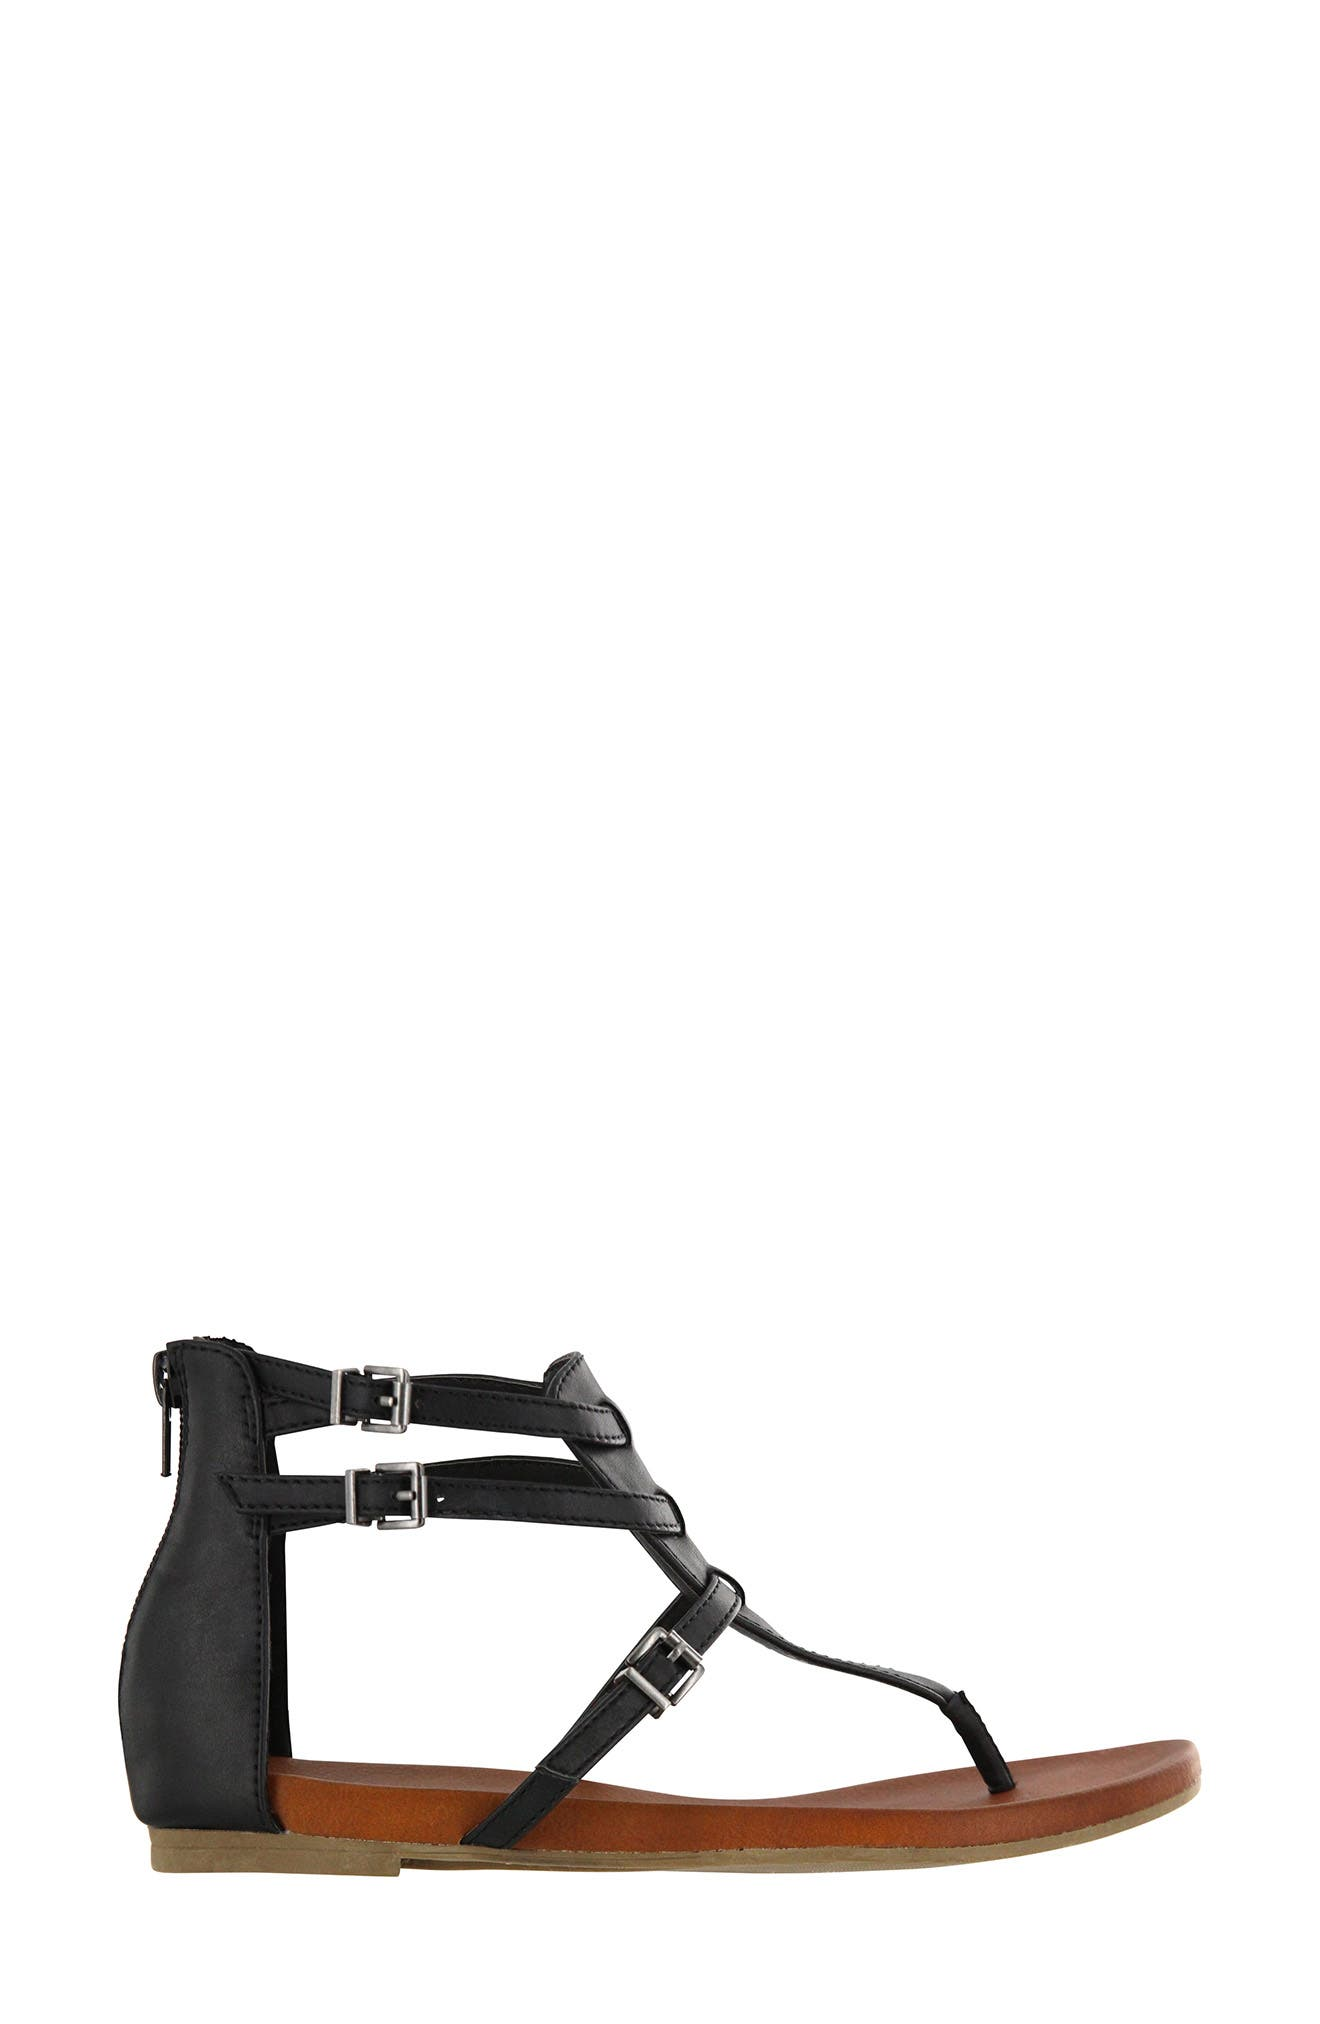 Dashiell V-Strap Sandal,                             Alternate thumbnail 3, color,                             Black